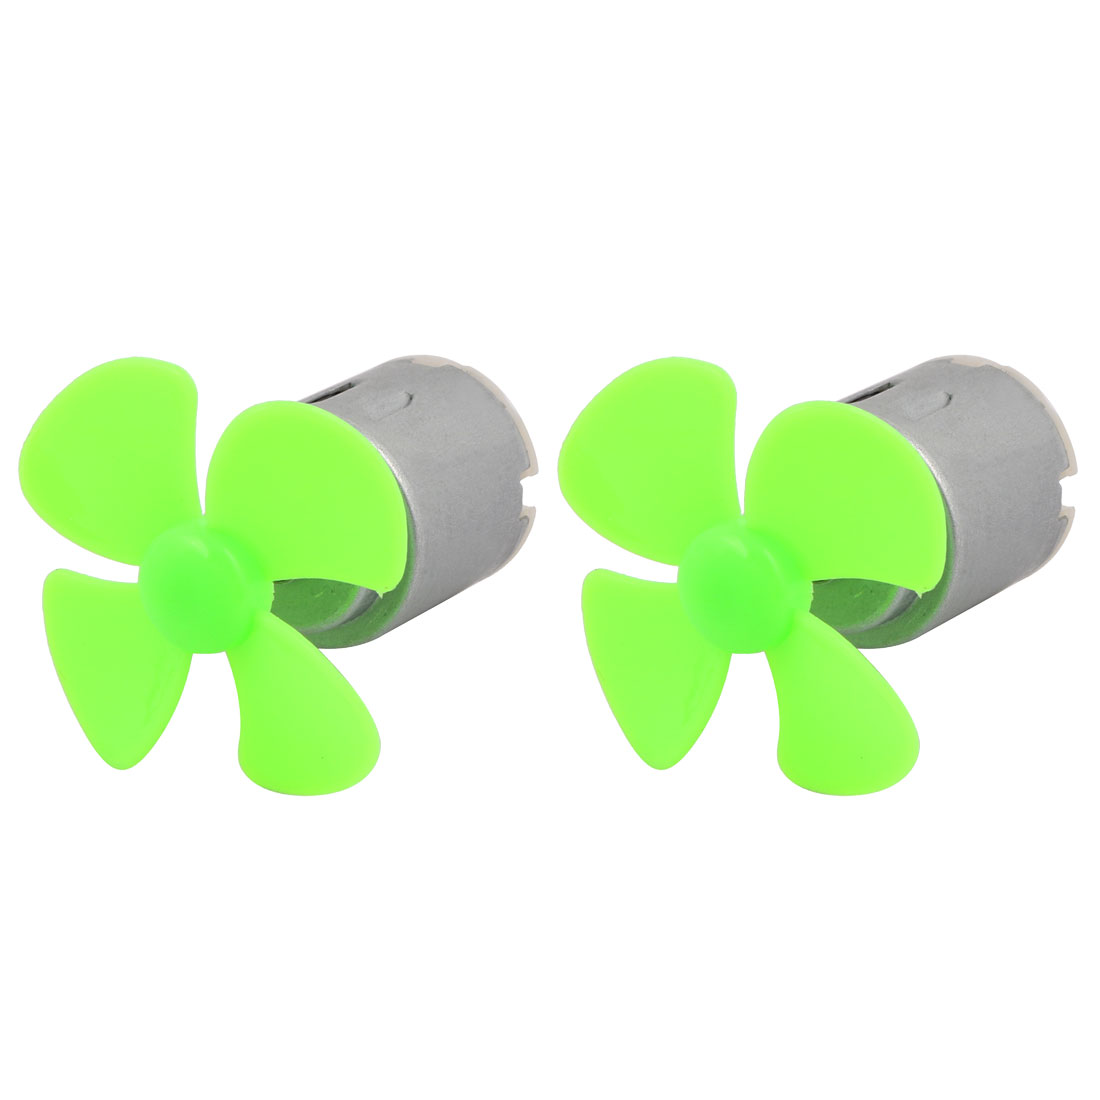 2pcs DC 3V 0.13A 11500RPM Strong Force Motor 4 Vanes 40mm Green Propeller for RC Aircraft